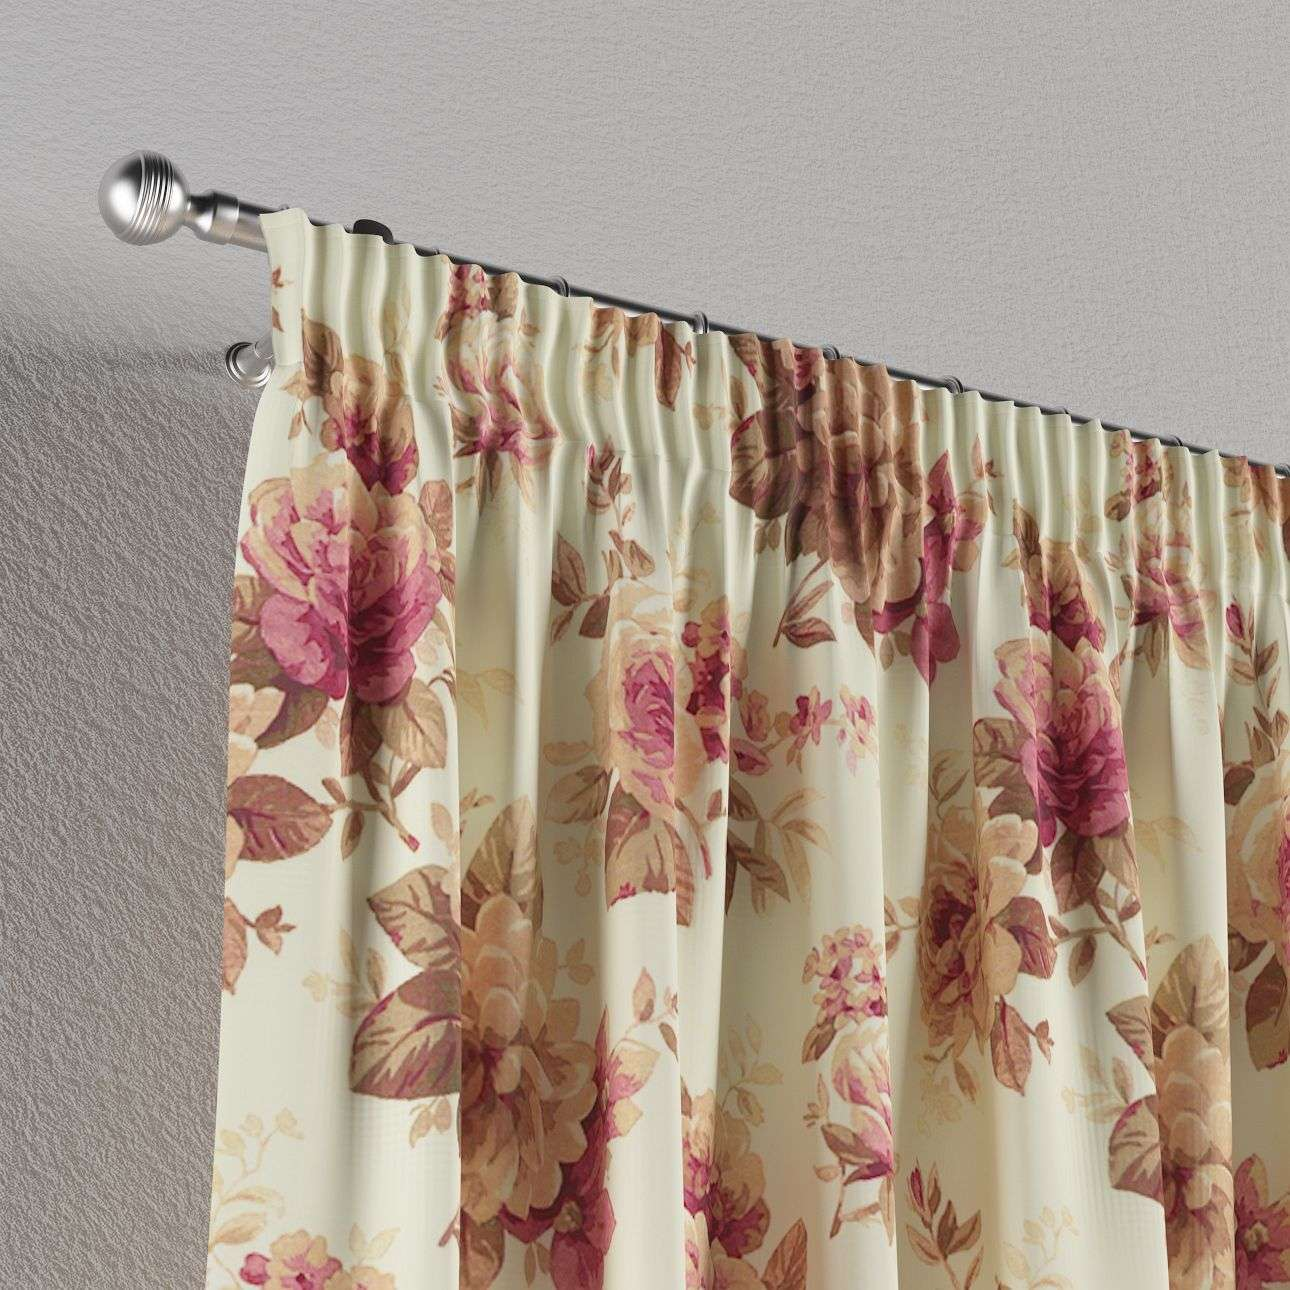 Pencil pleat curtains 130 x 260 cm (51 x 102 inch) in collection Mirella, fabric: 141-06